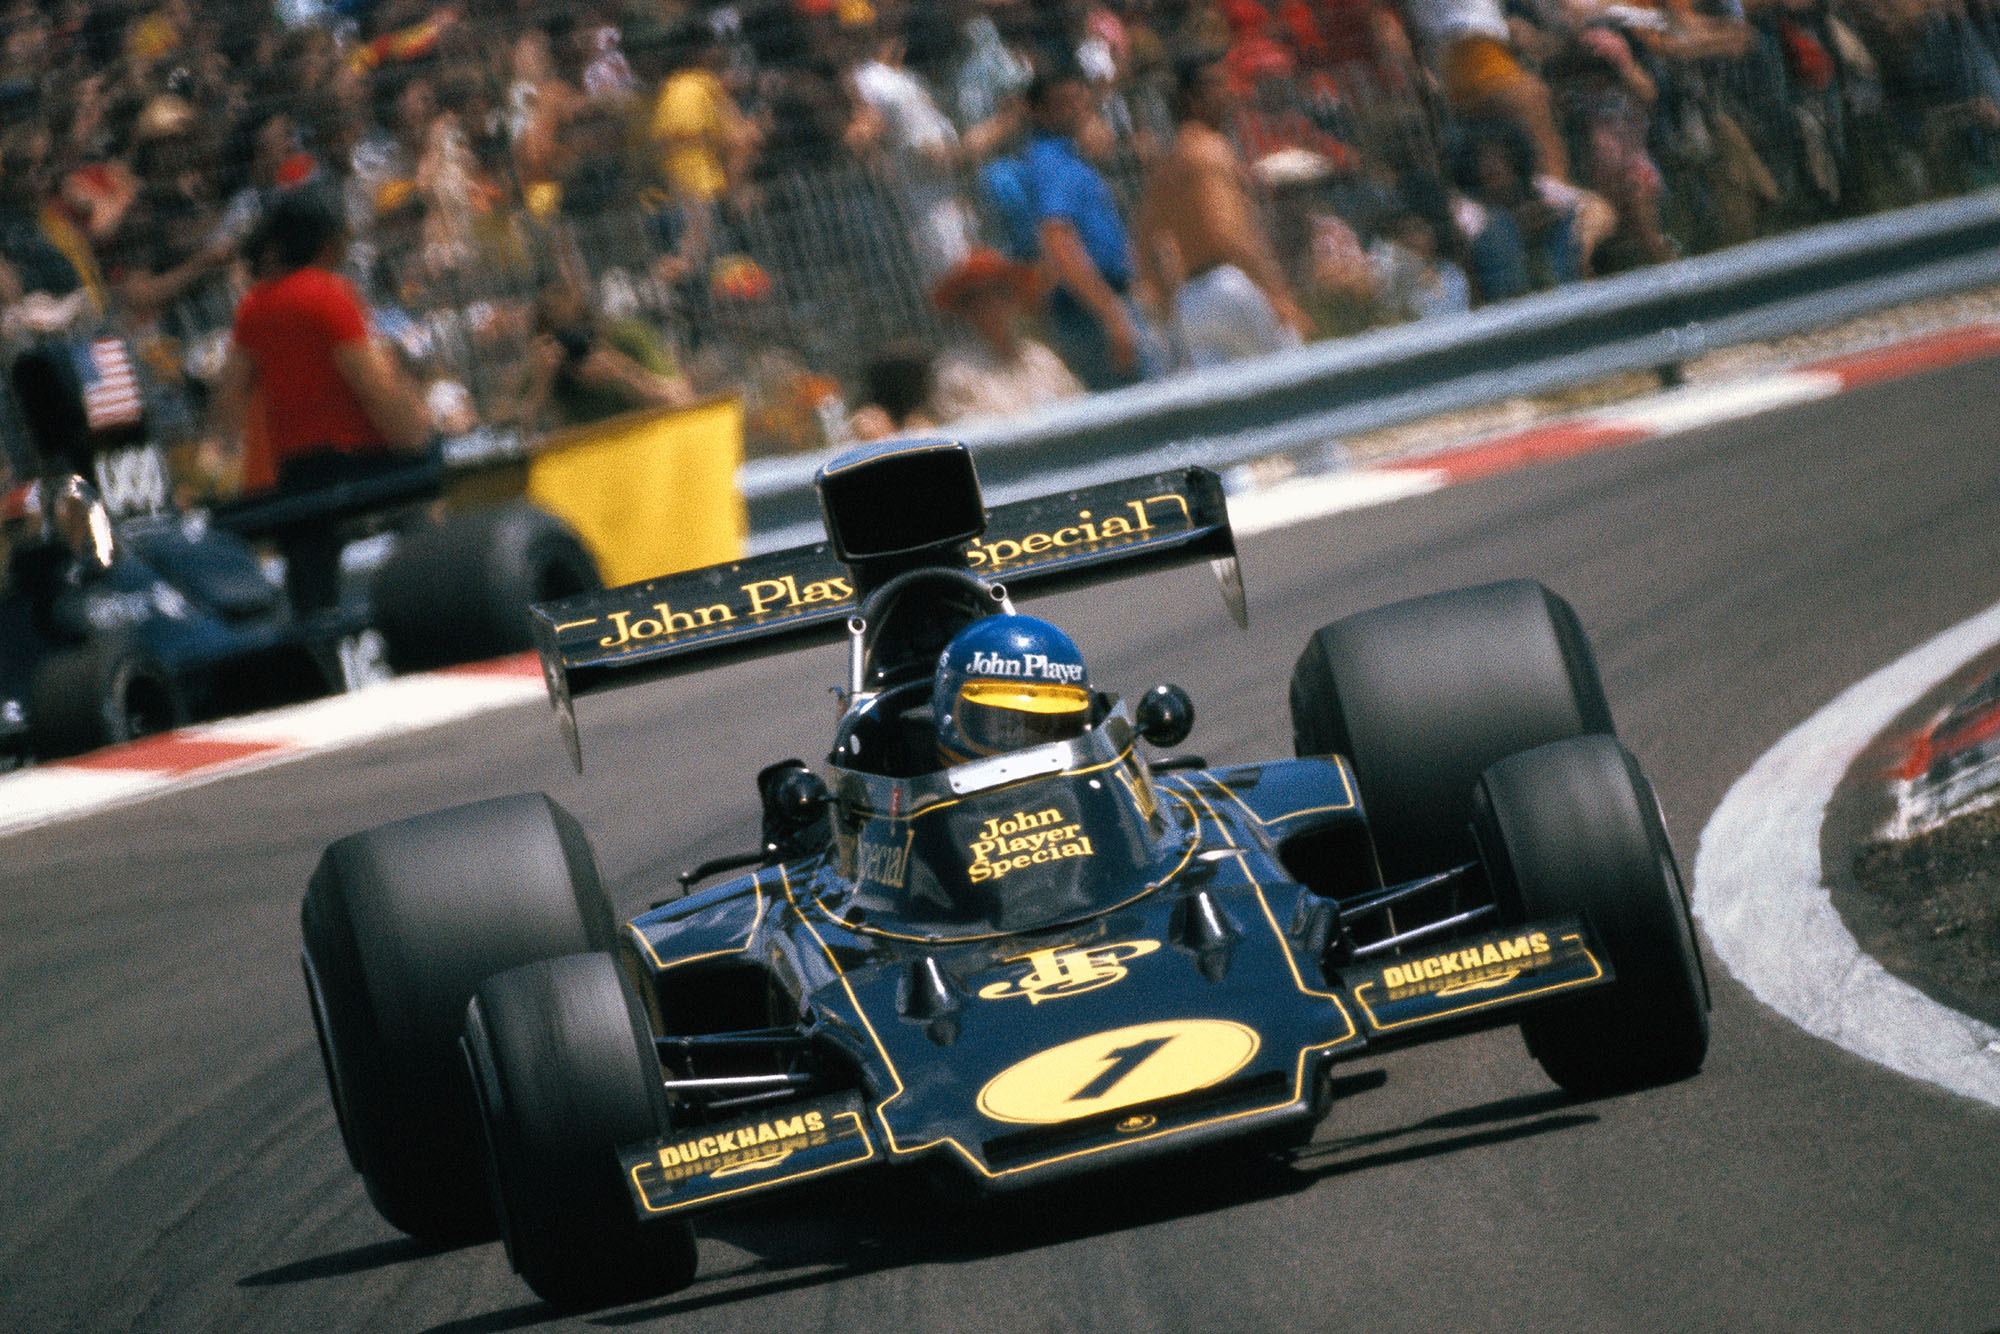 Ronnie Peterson in his Lotus at the 1974 French Grand Prix, Paul Ricard.